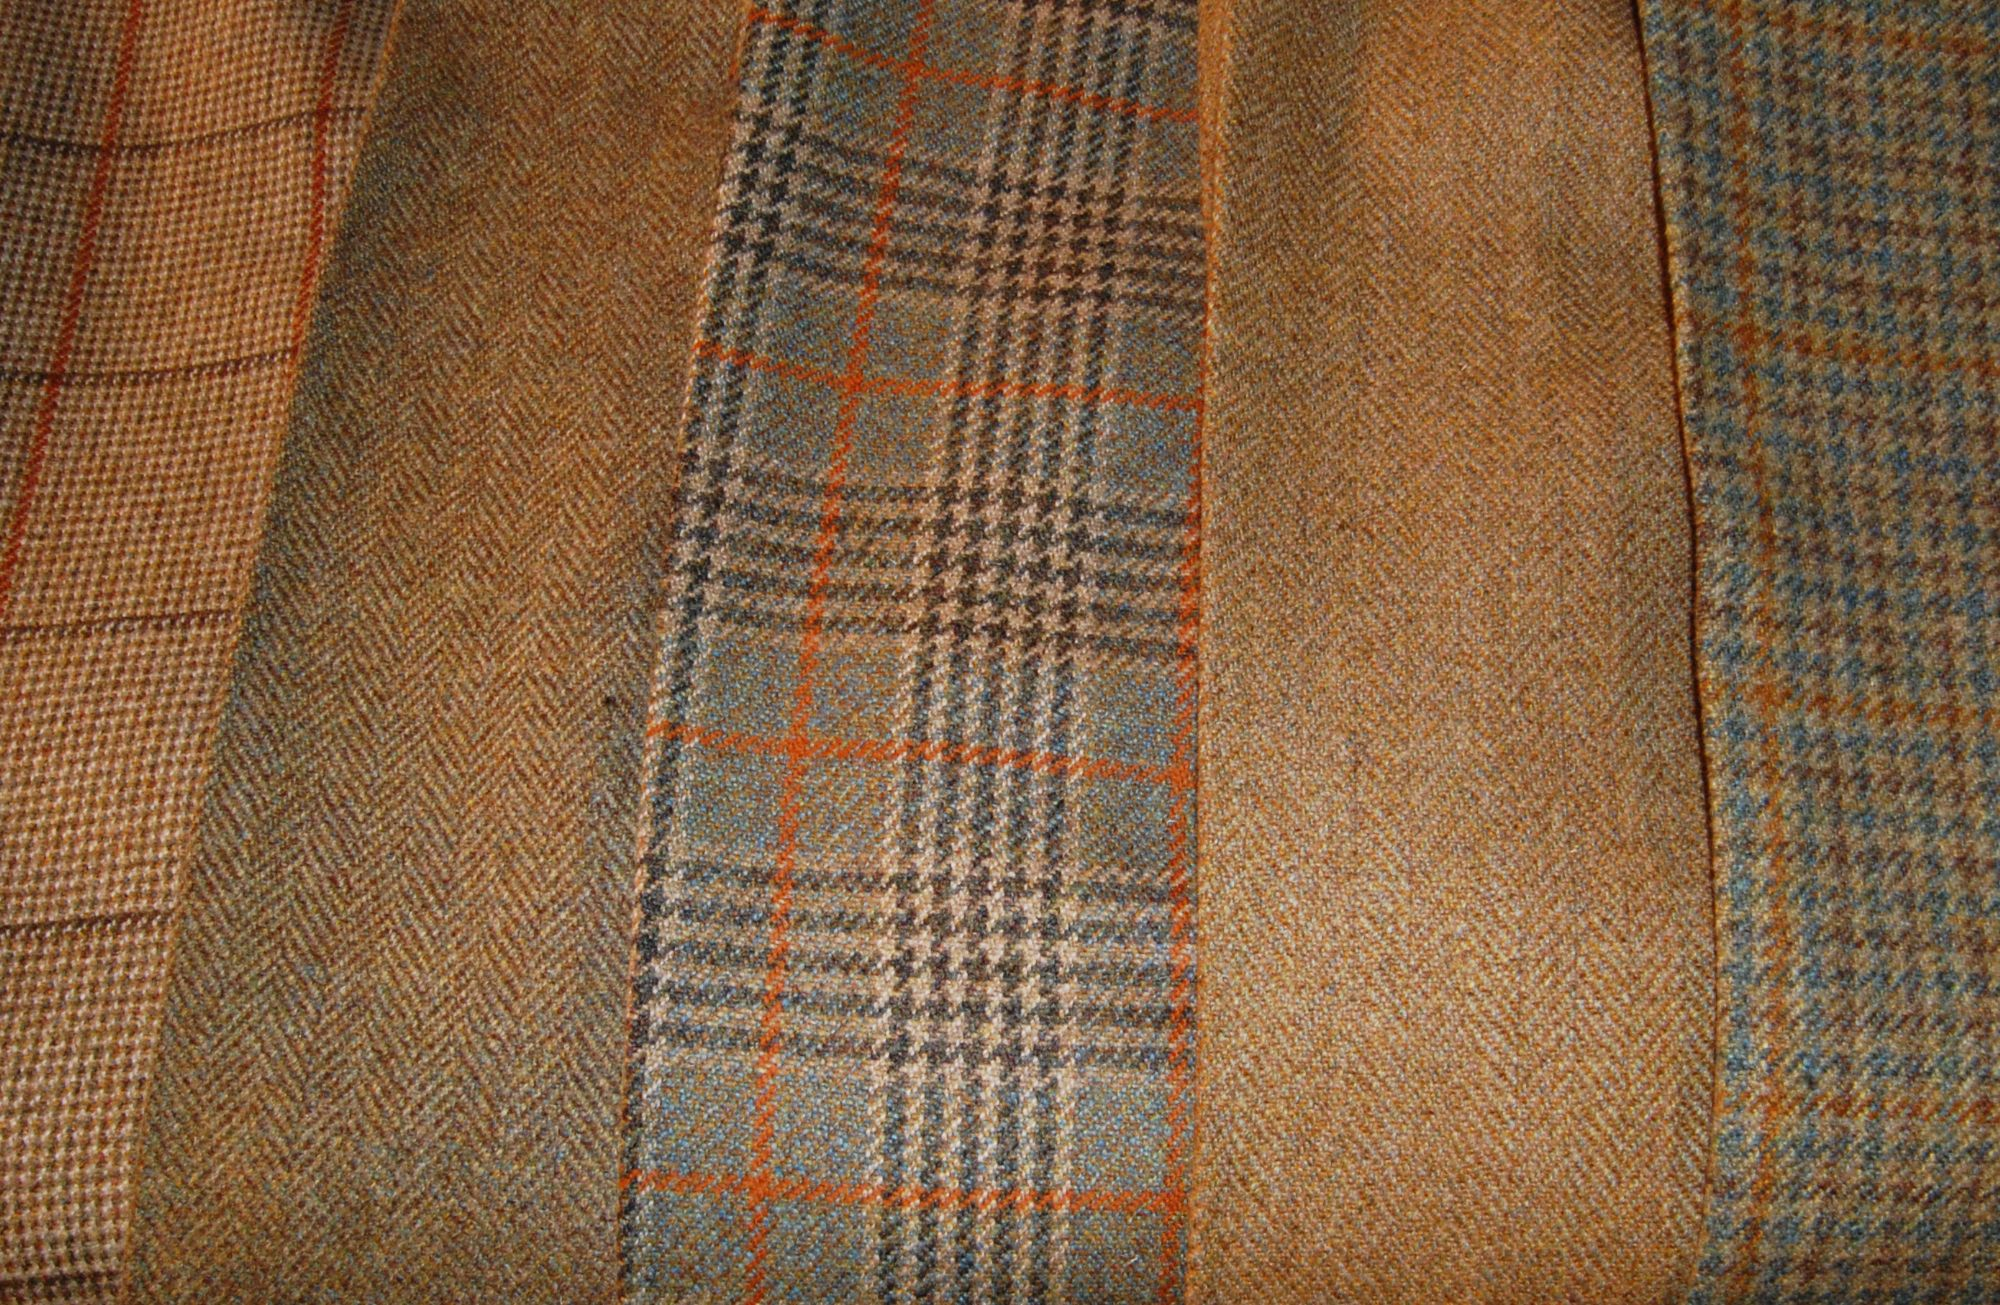 House of Bruar estate tweeds for fieldsports, gamekeepers in heavyweight wool